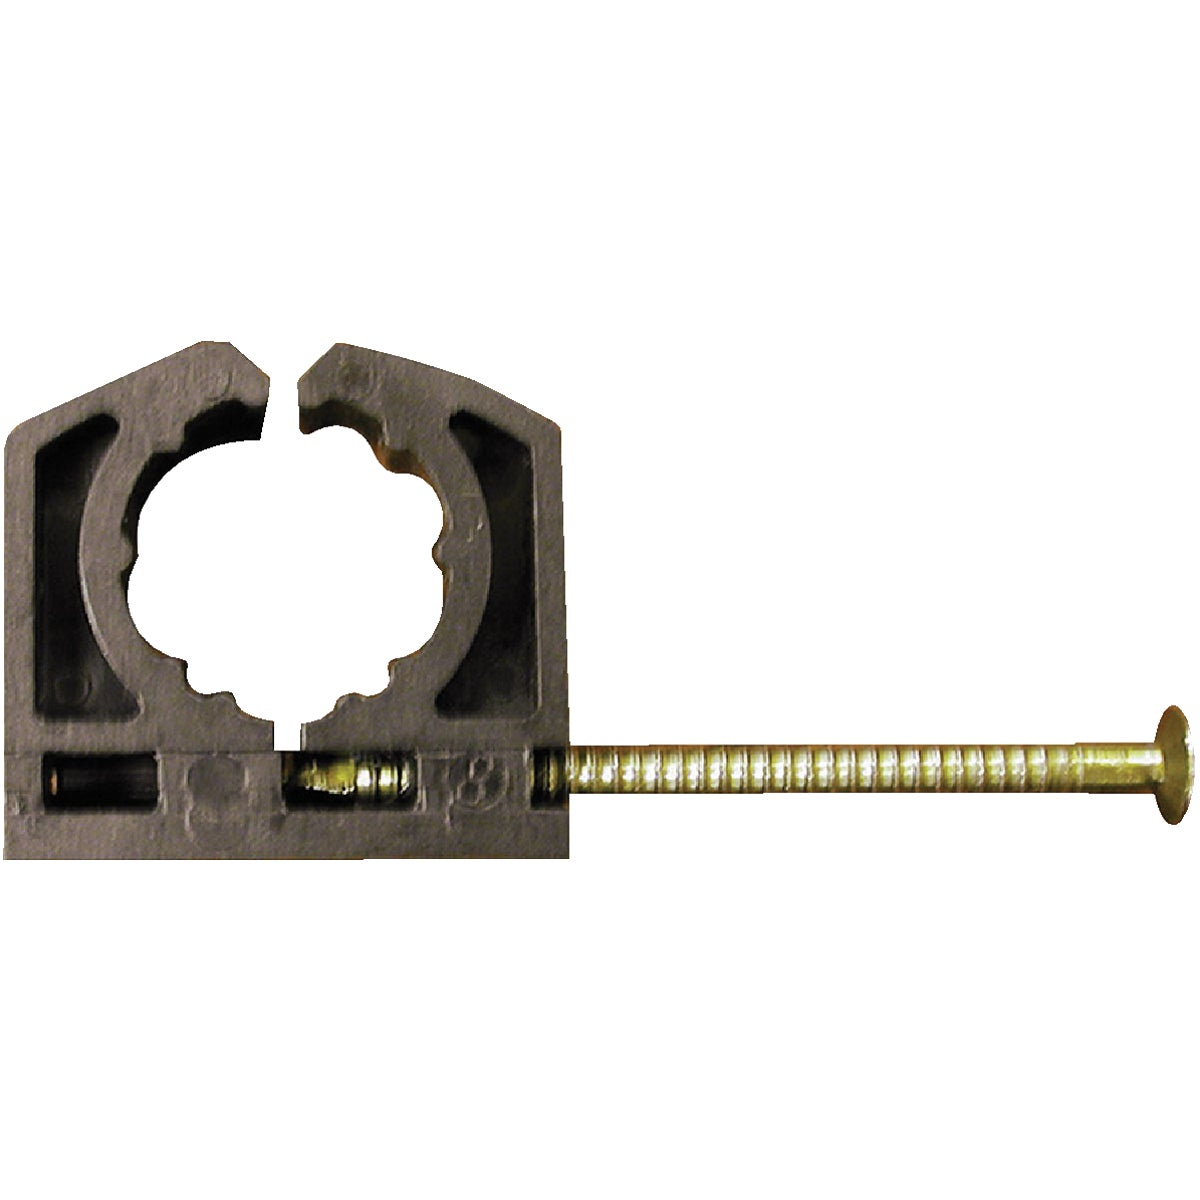 "1/2"" PIPE CLAMP - H25-050 by Jones Stephens Corp"